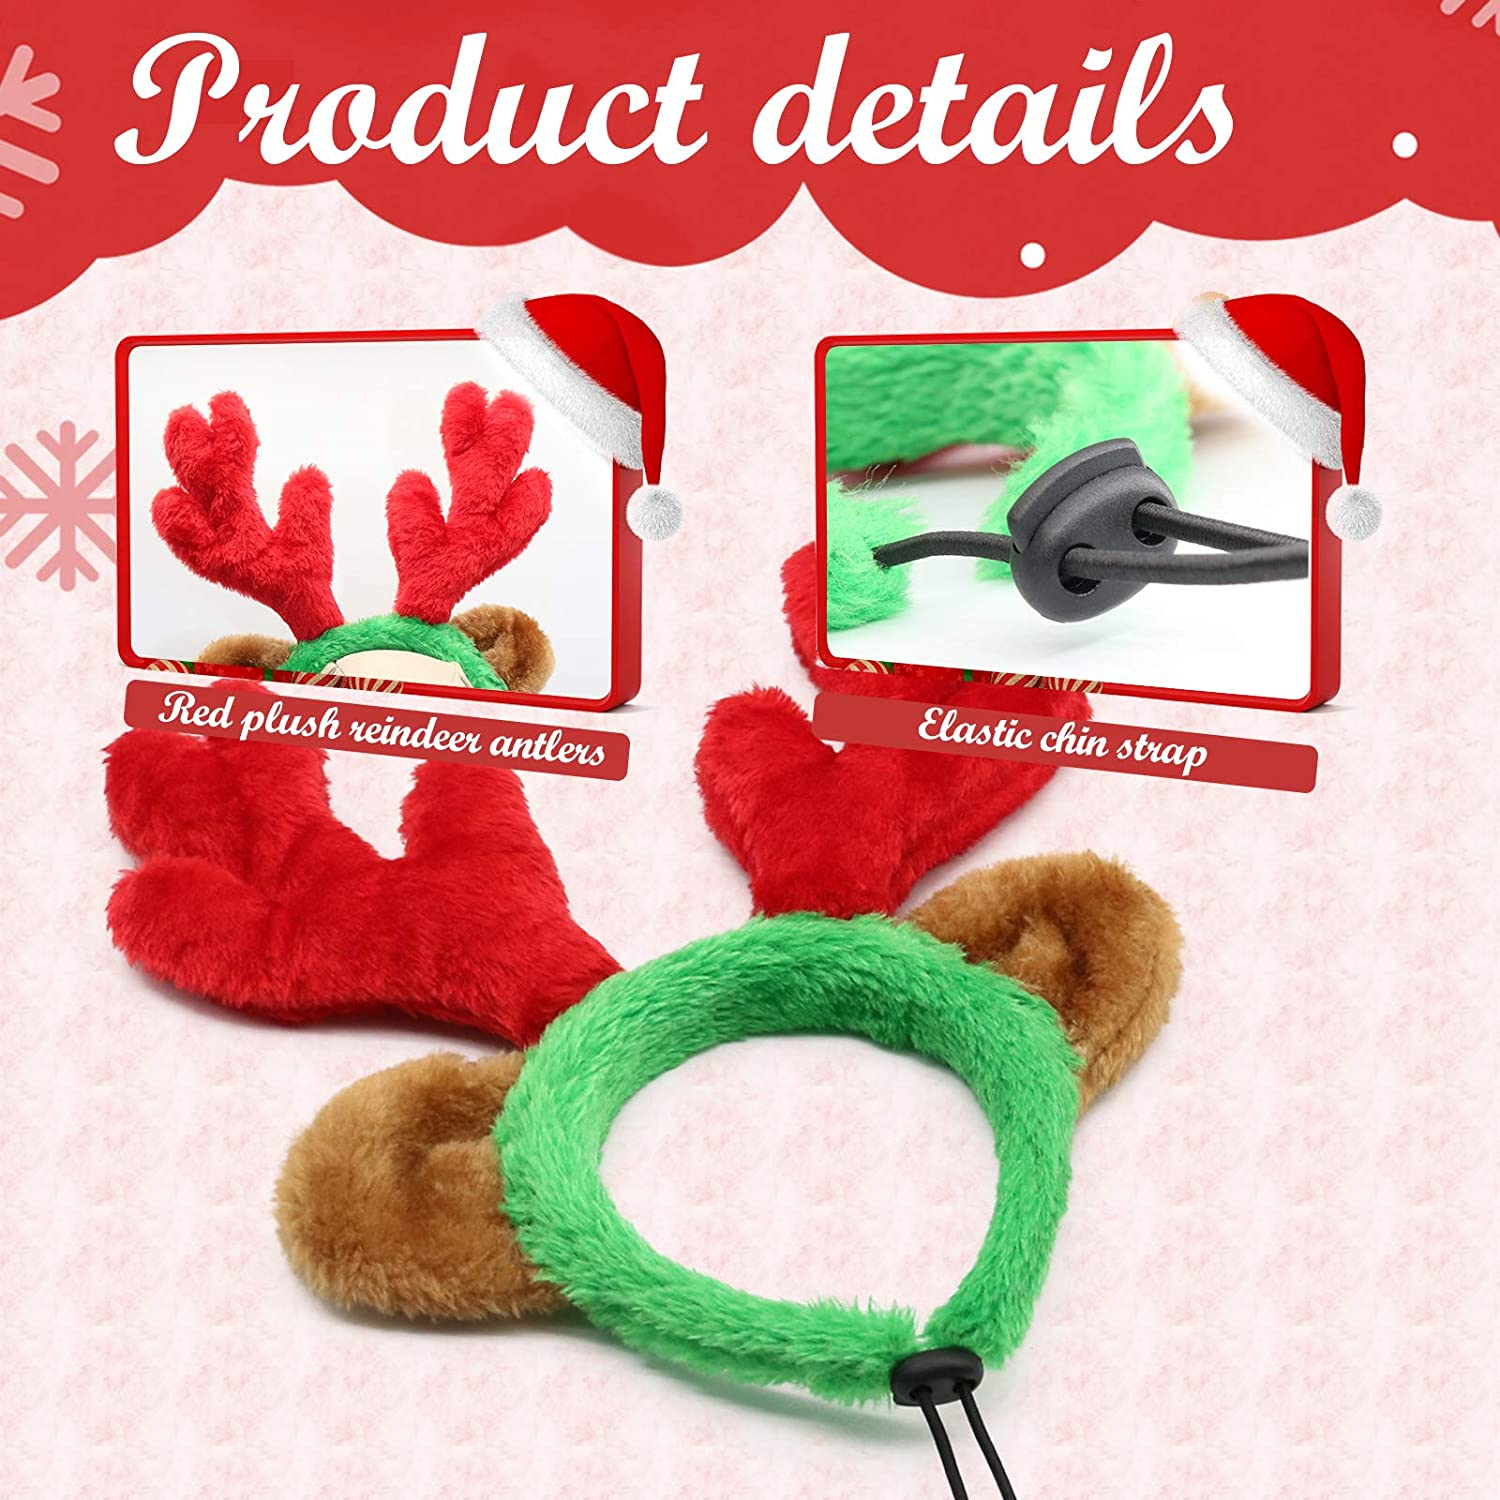 BWOGUE Christmas Reindeer Antlers with Bell Collar Set Adjustable Dog Christmas Costume Accessories Classic Elk Headwear for Medium Large Dogs